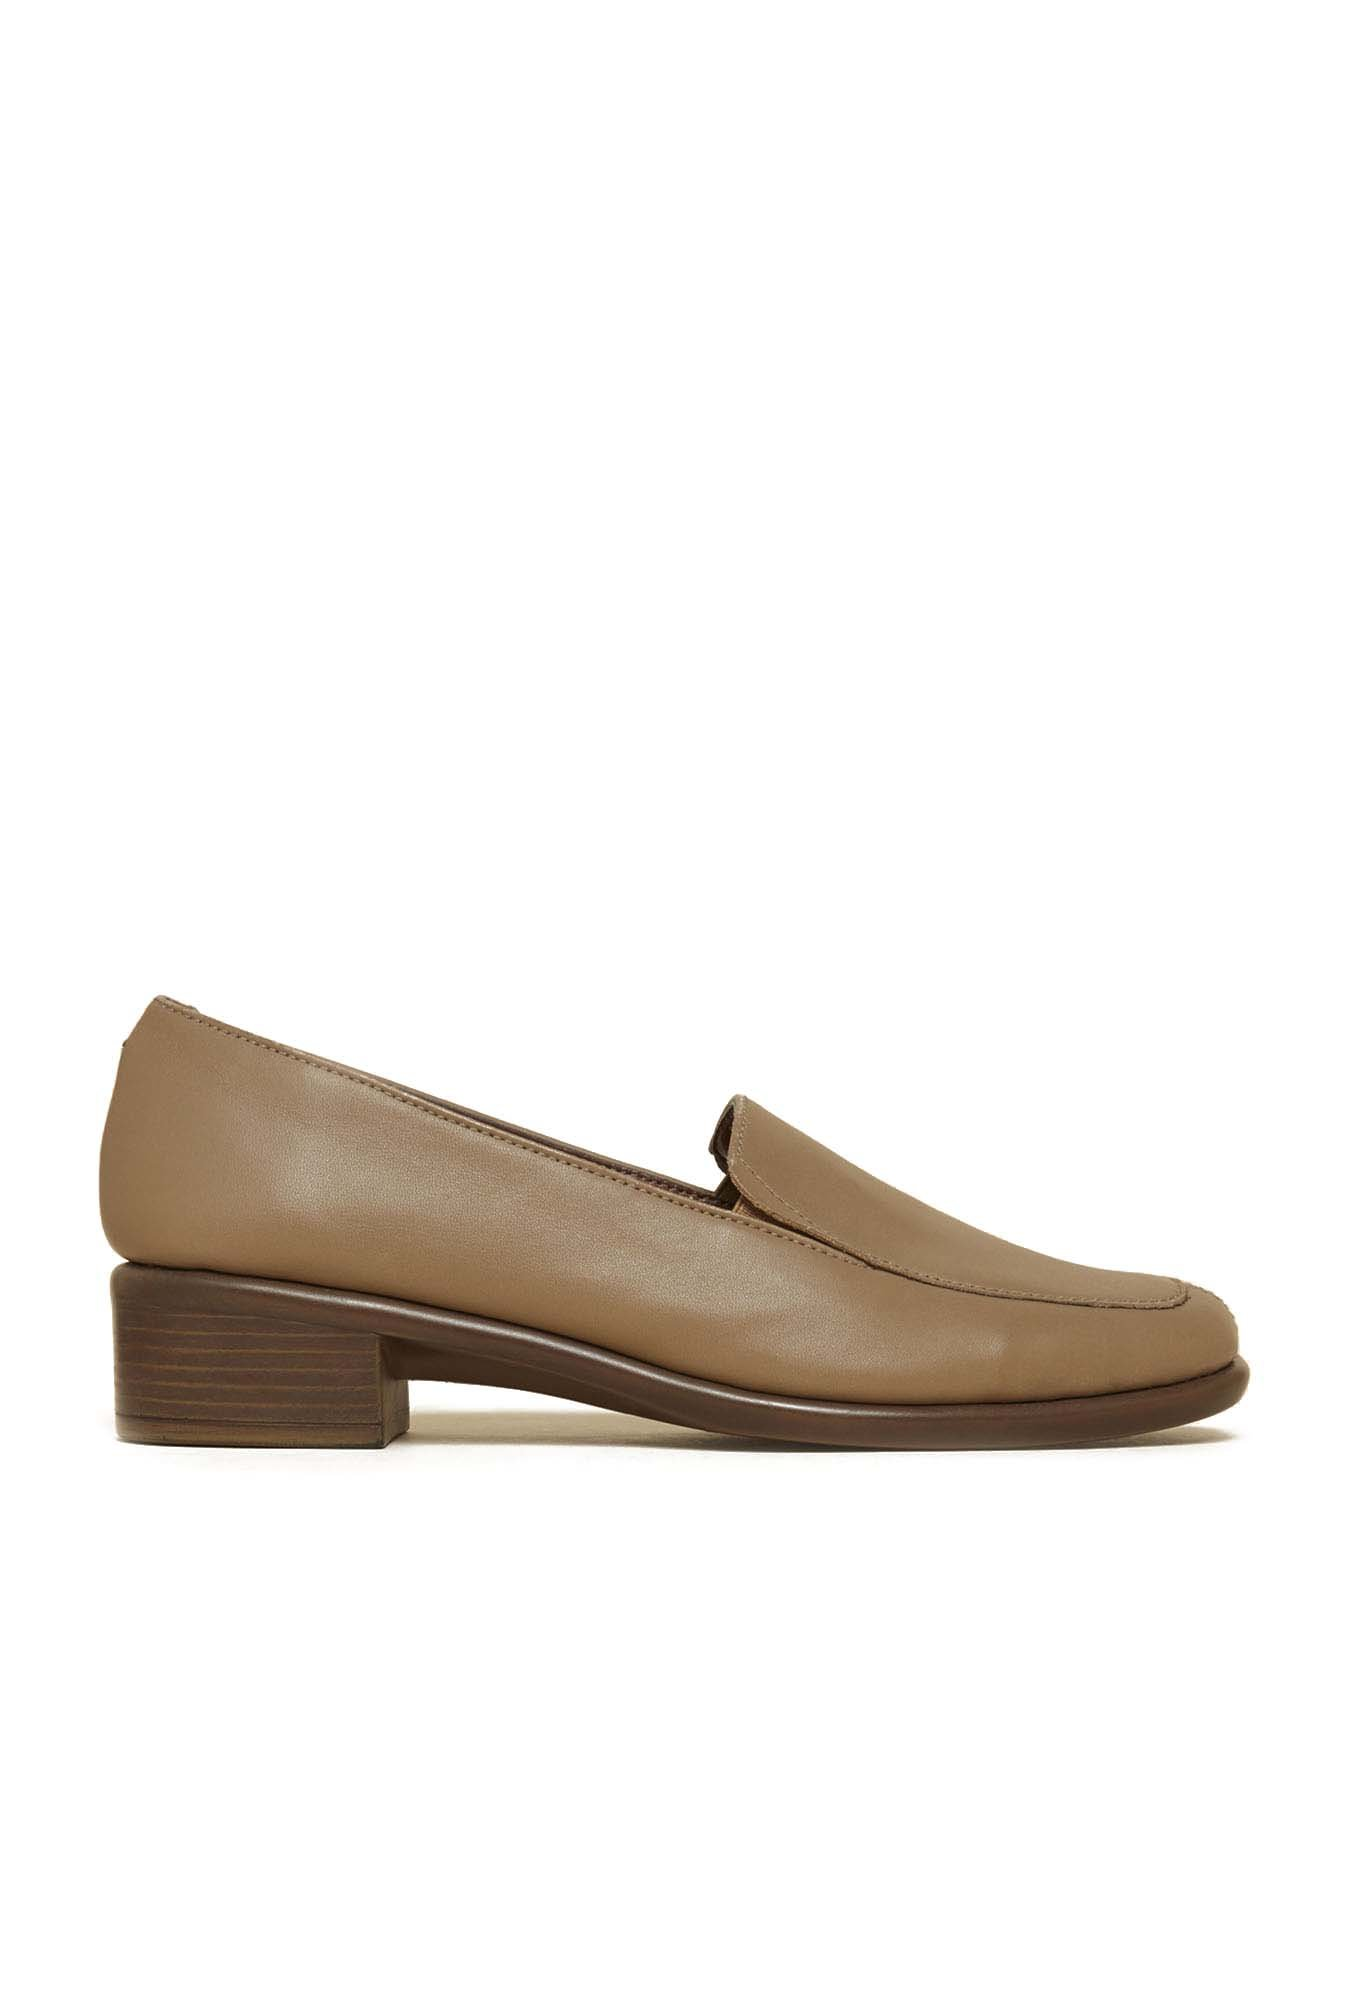 Aerosoles Classic Brown Shoes